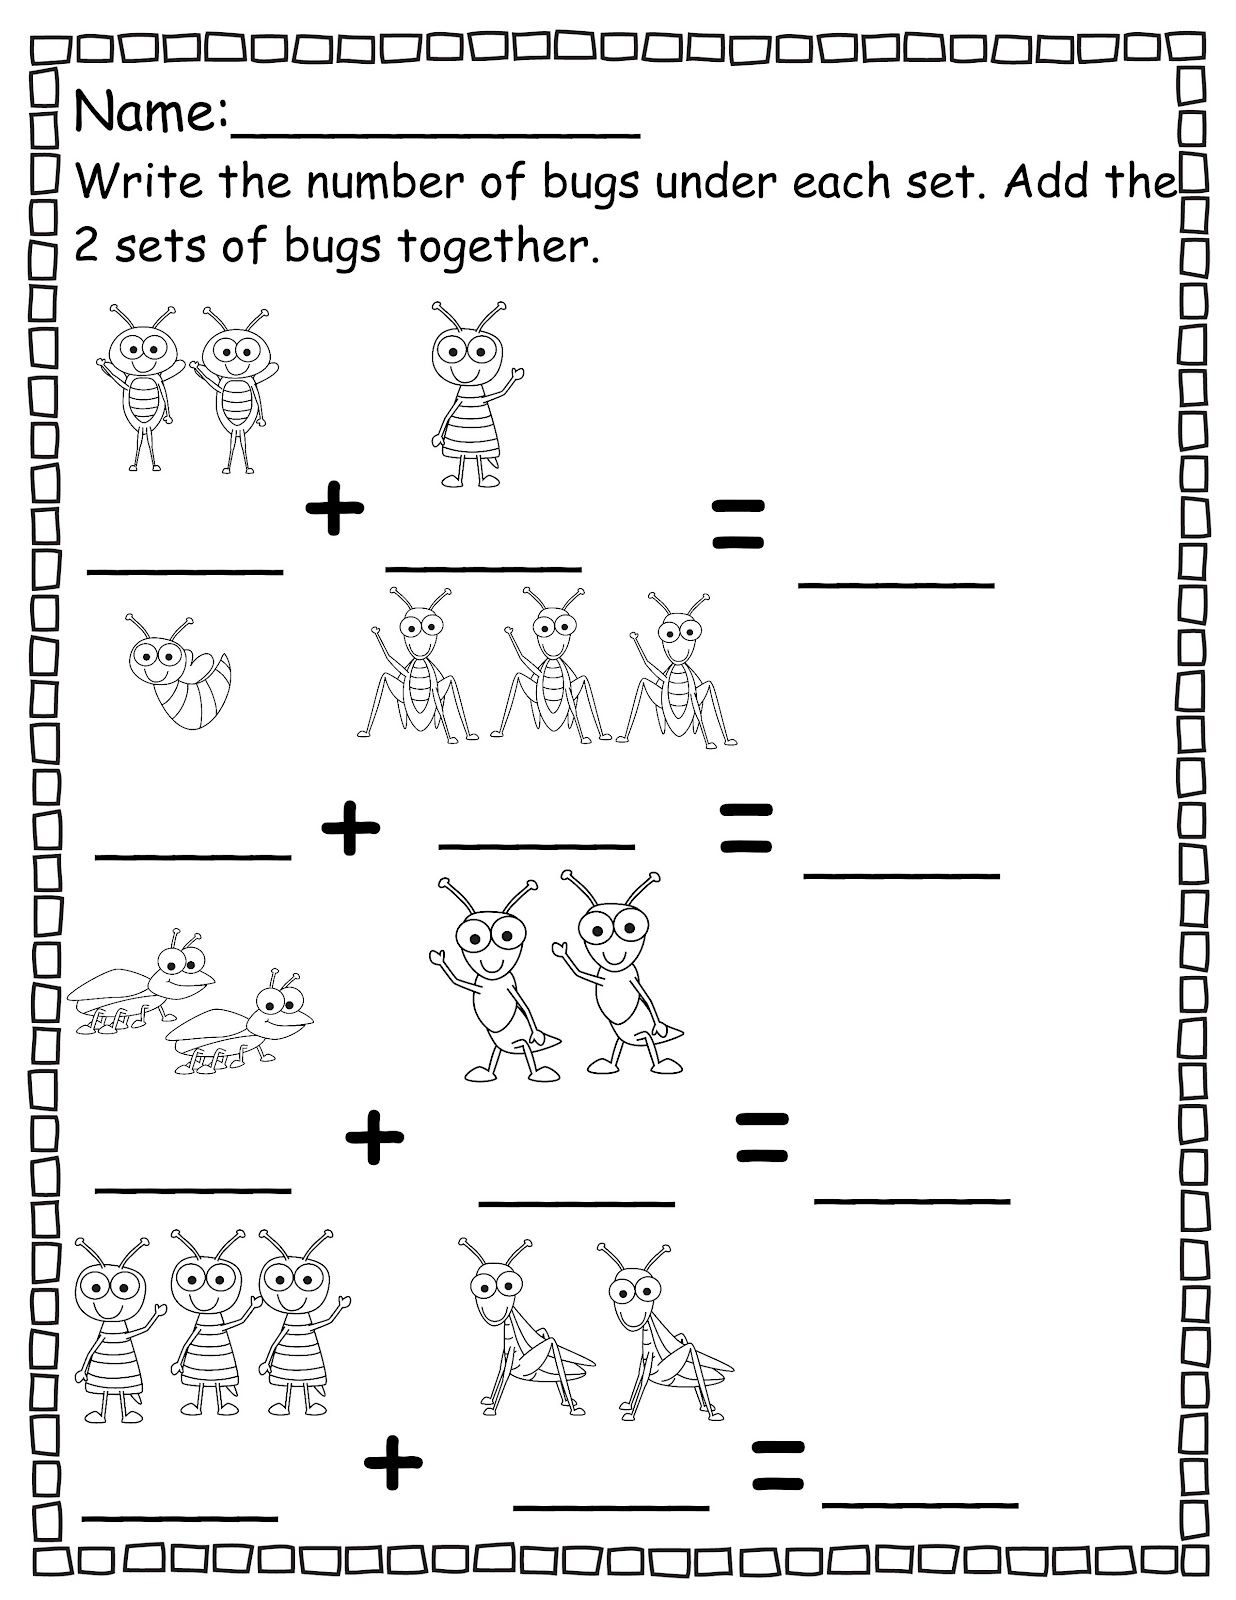 Printables Prek Math Worksheets safarmediapps Worksheets Printables – Pre K Math Worksheet